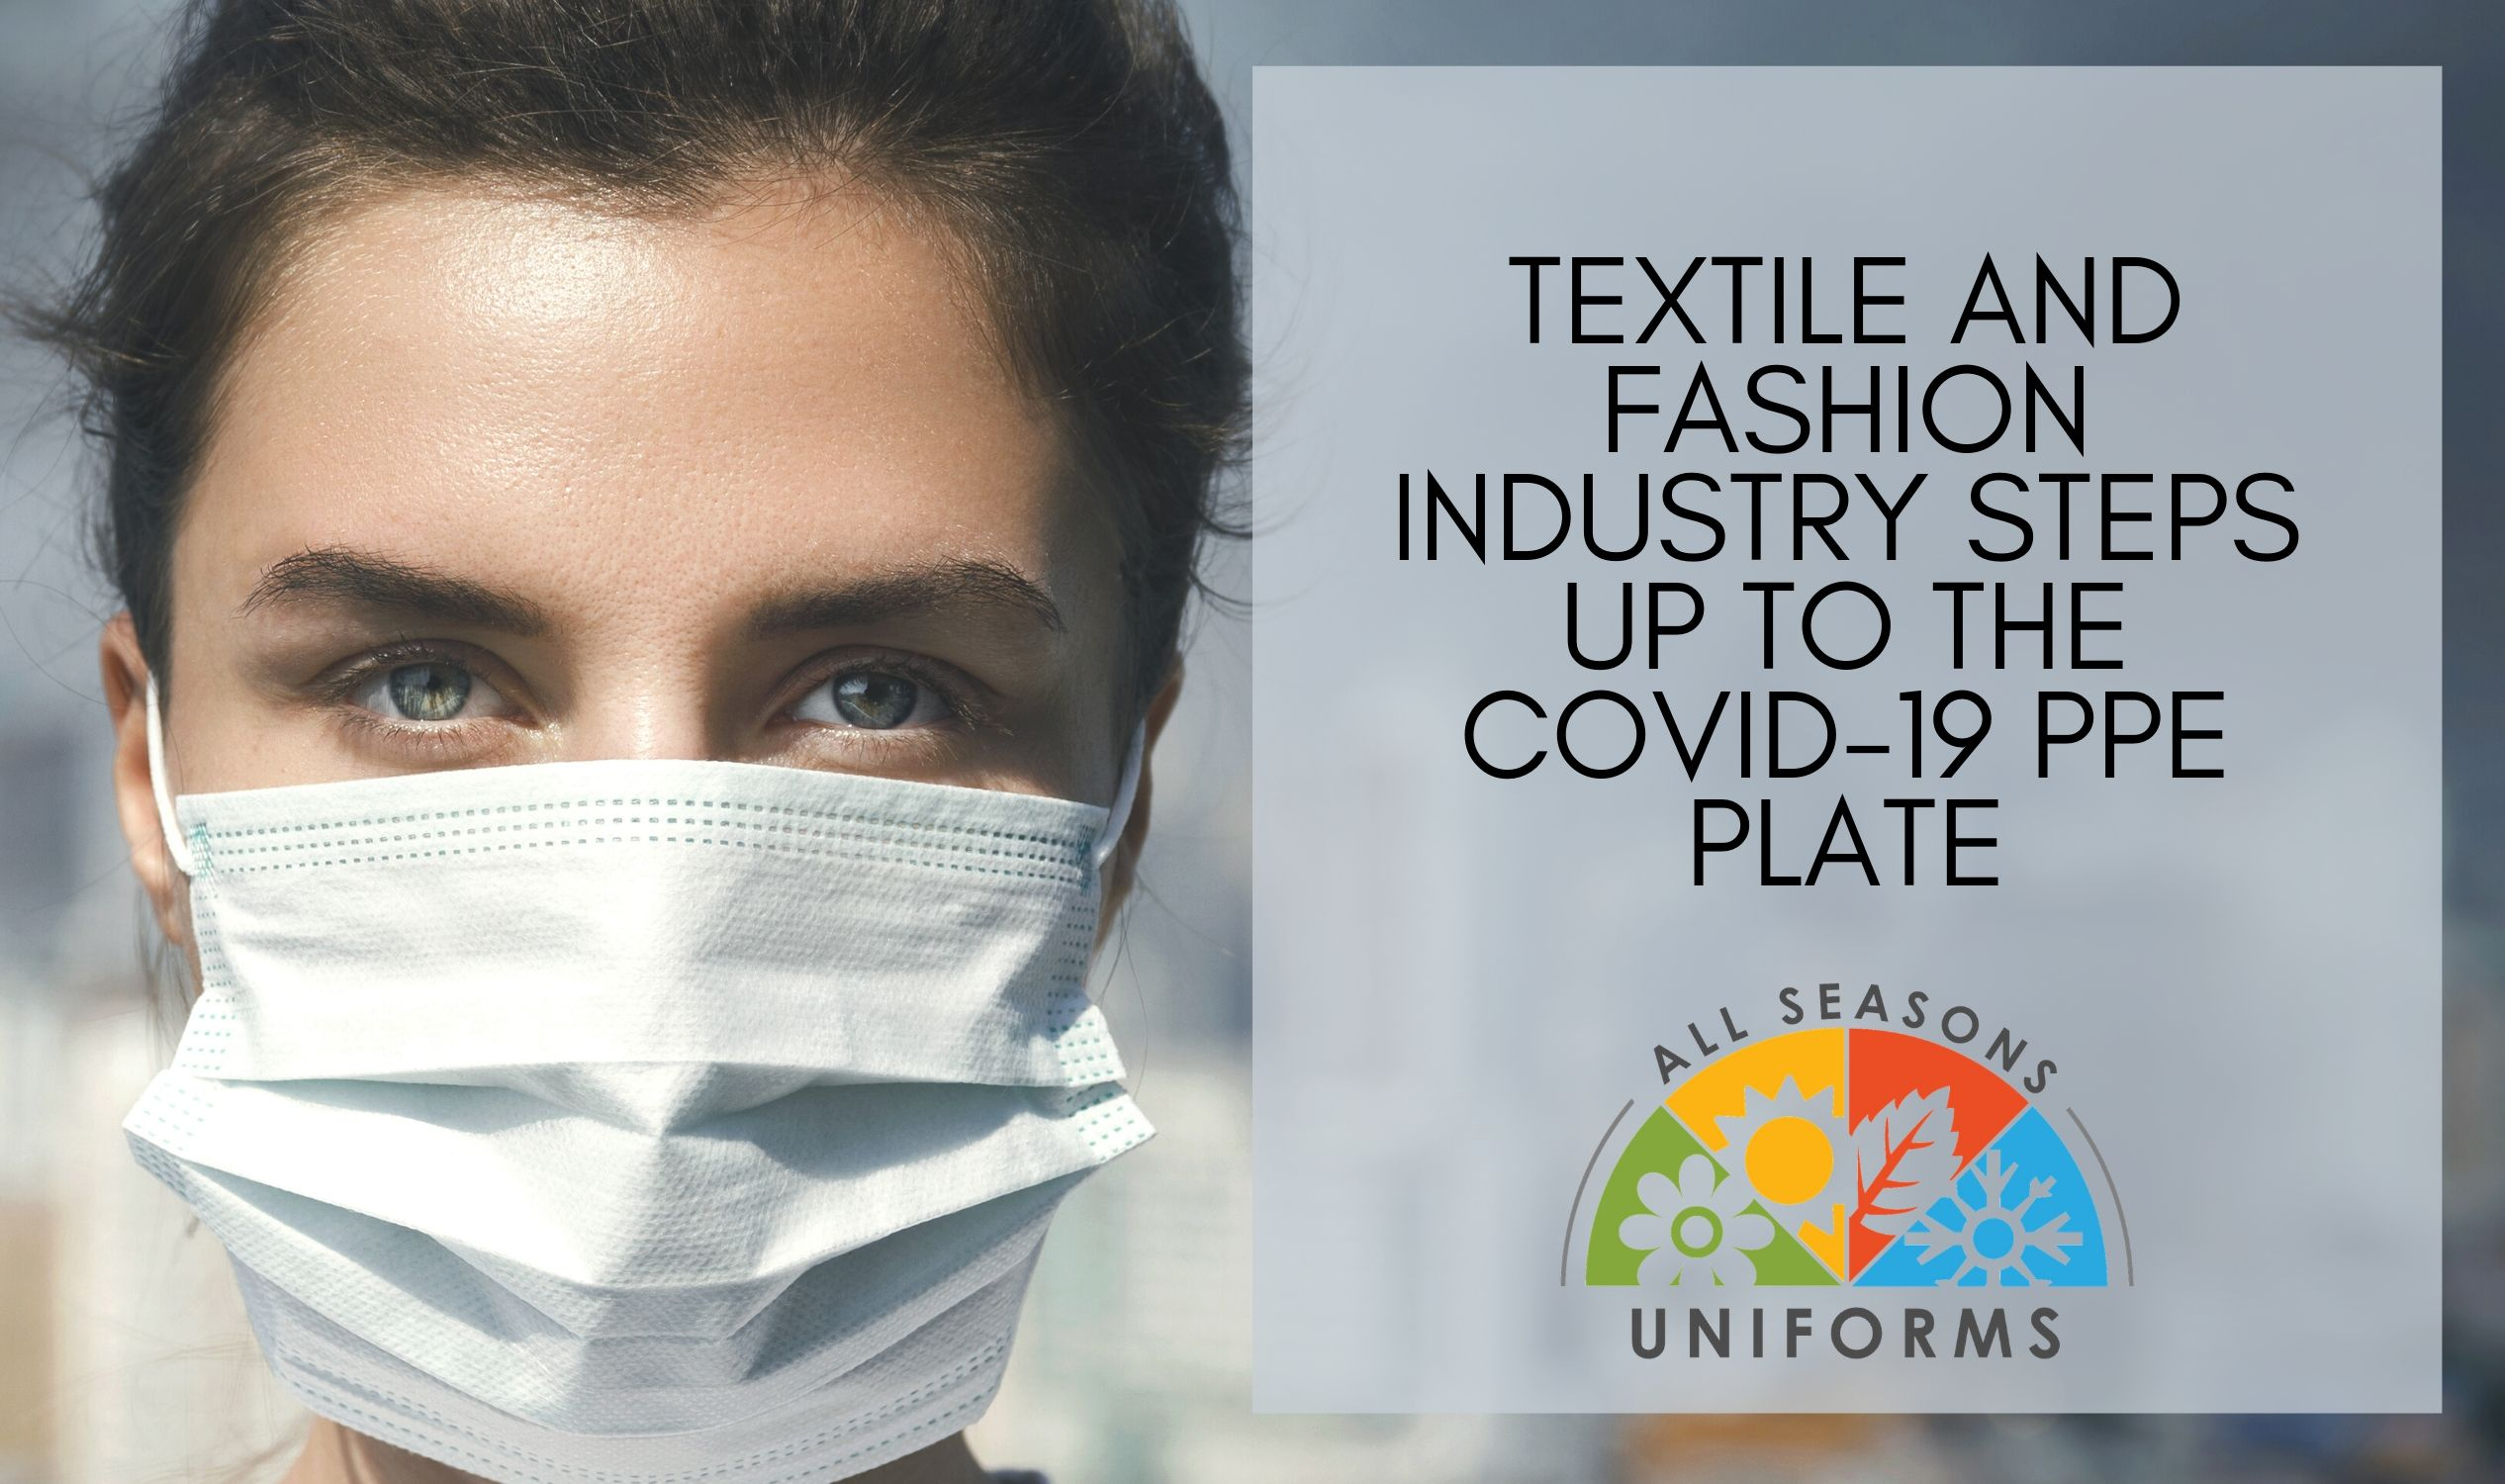 Textile and Fashion Industries Step Up to the COVID-19 PPE Plate